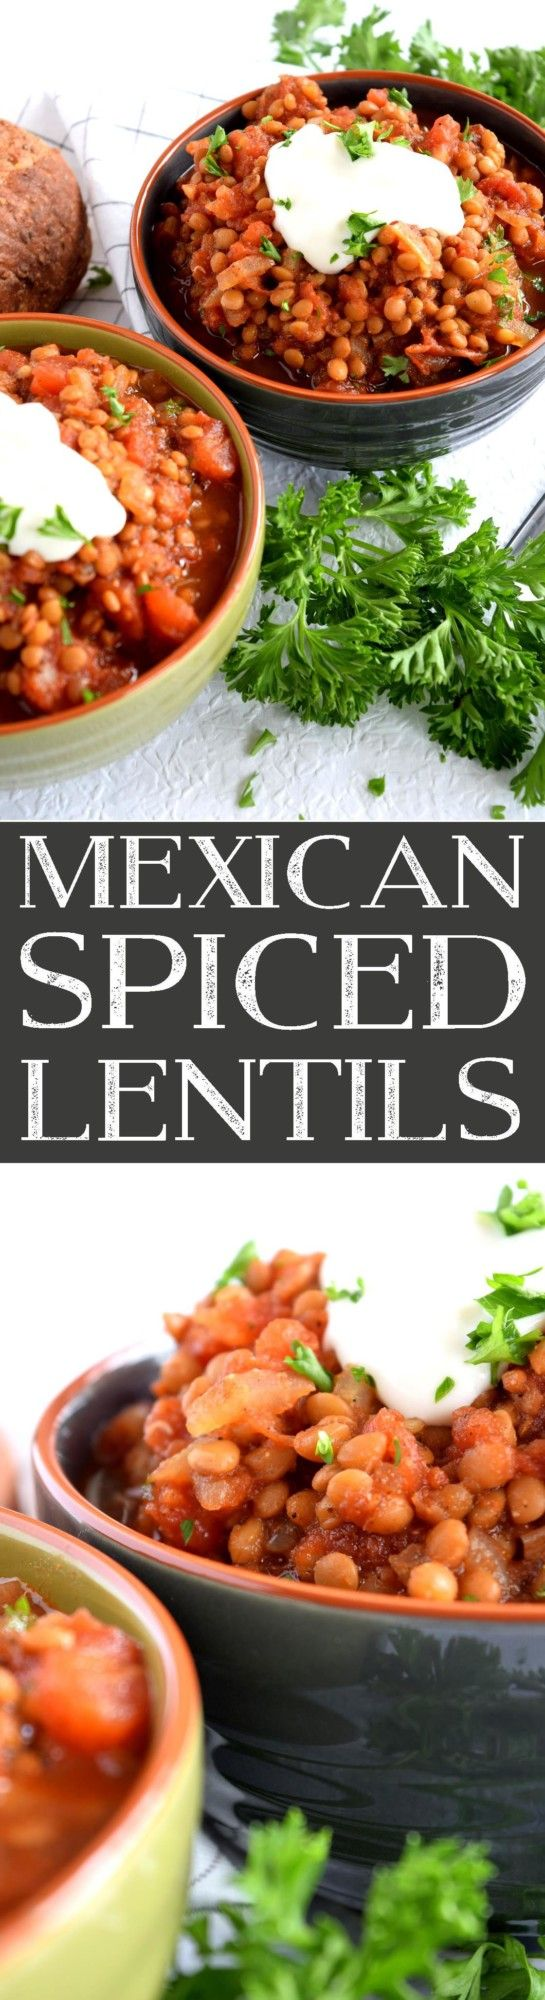 Mexican Spiced Lentils